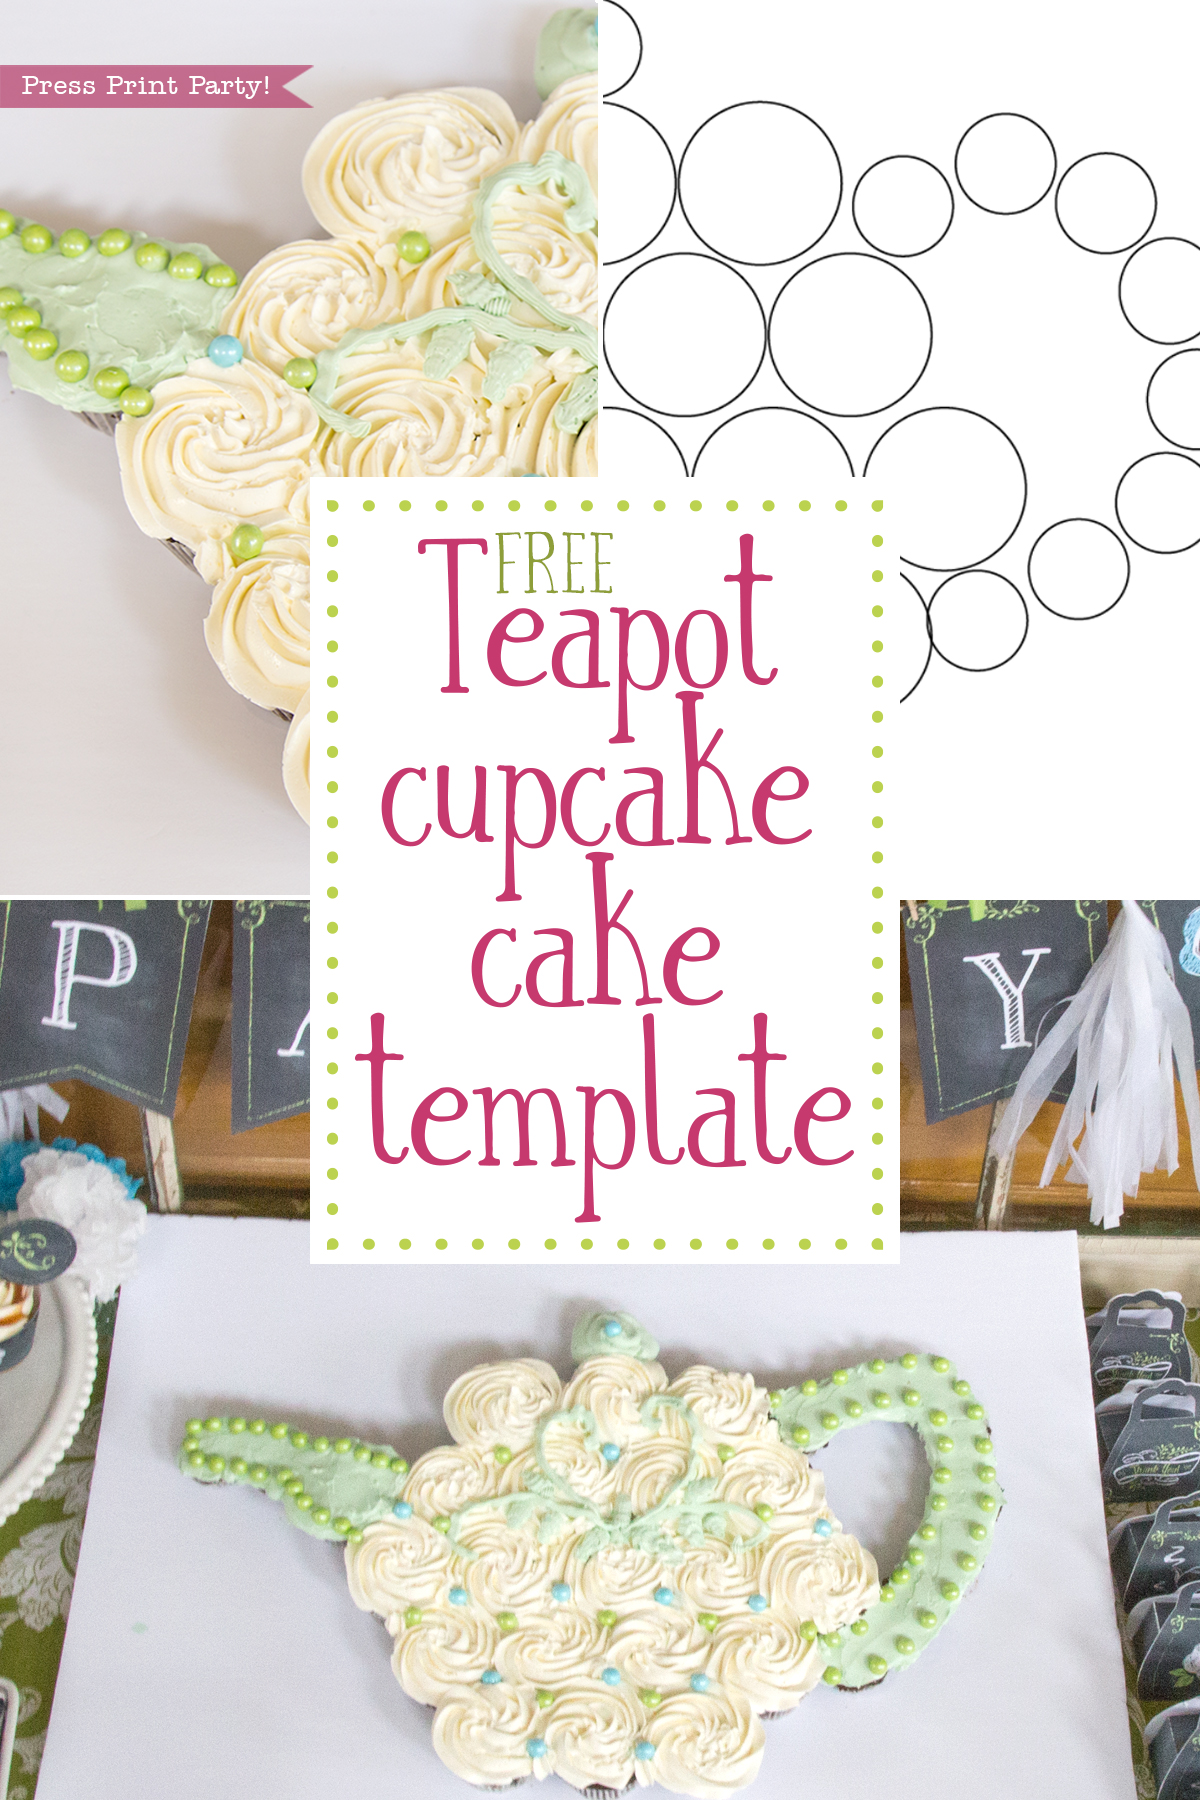 photo about Teapot Template Free Printable identified as Free of charge Teapot Cupcake Cake Template and Information as a result of Drive